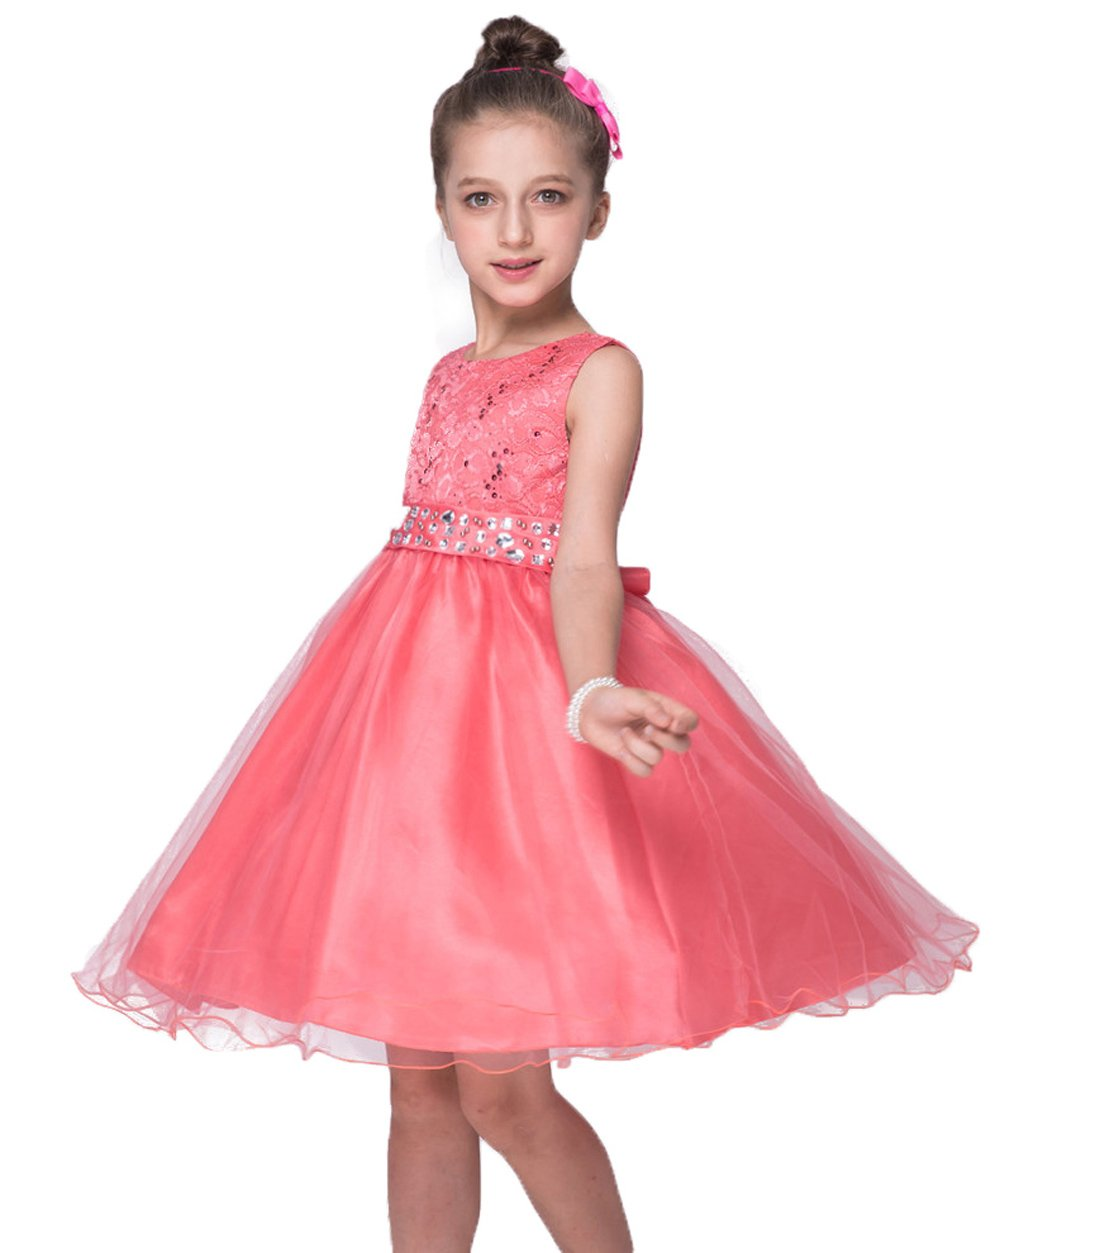 Dresses for Girls Church Dress Summer Birthday Special Occasion Wedding Bridesmaid Dresses Size 10 (Coral, 150)